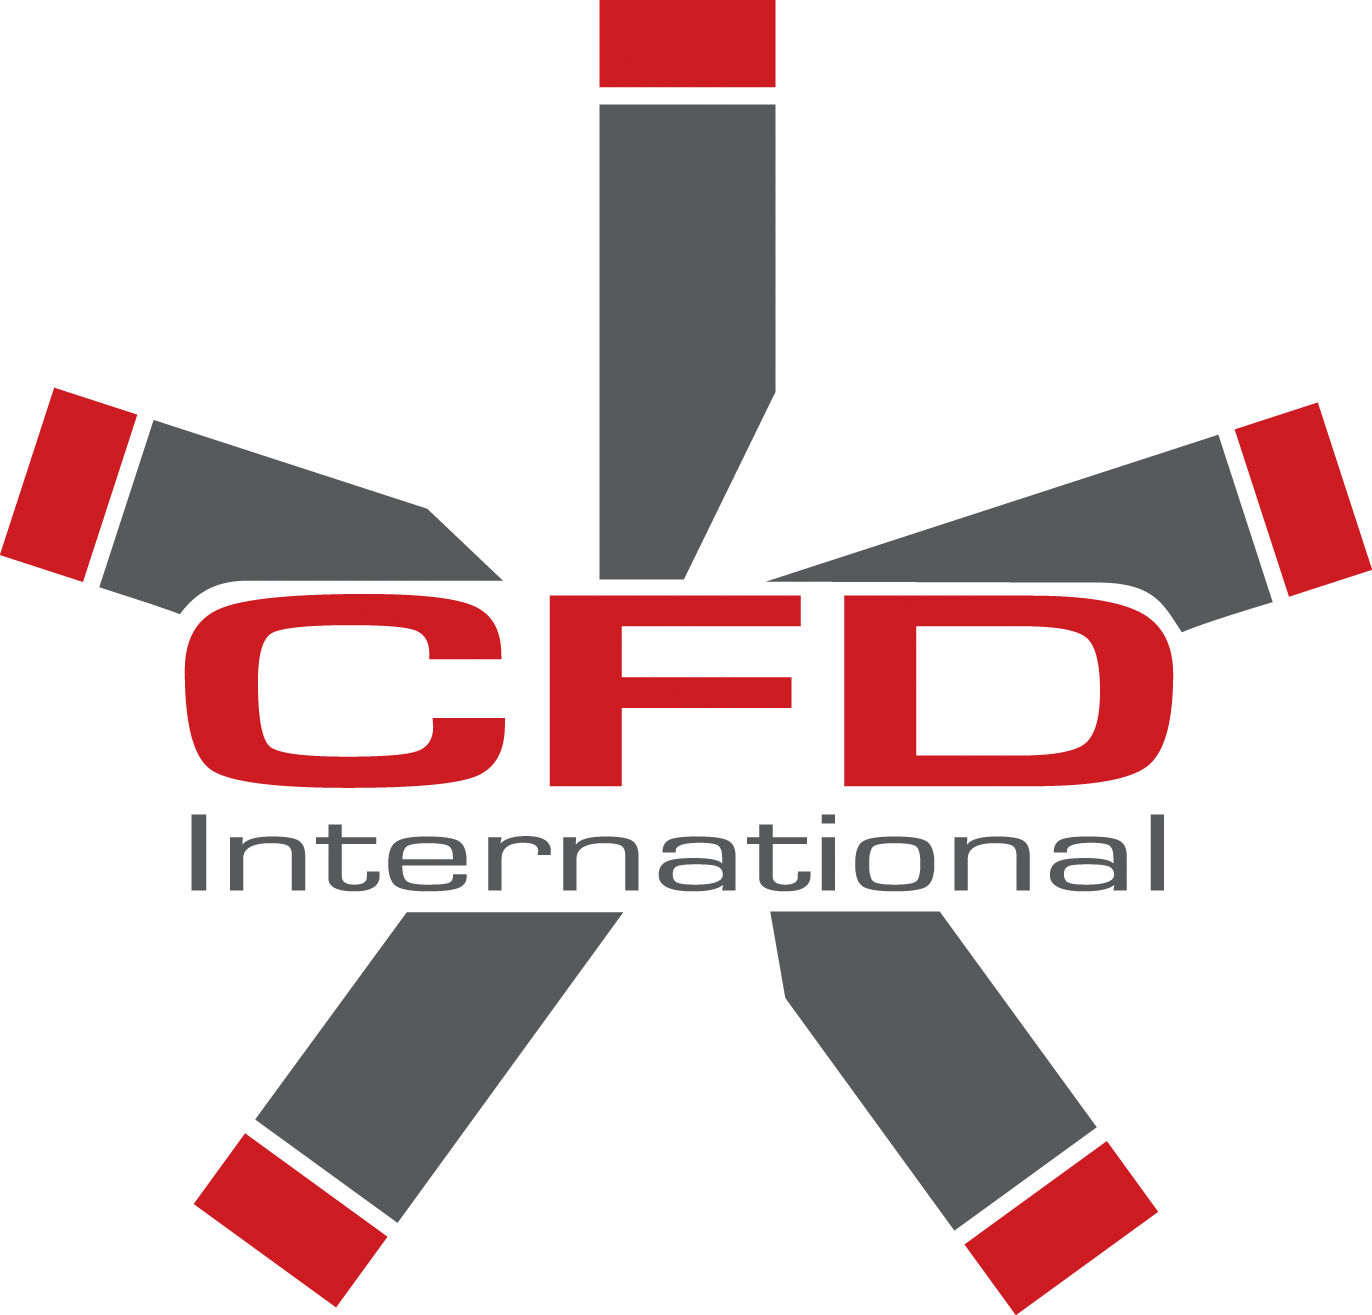 CFD International, LLC in Princeton, TX. Military aircraft components & armament.